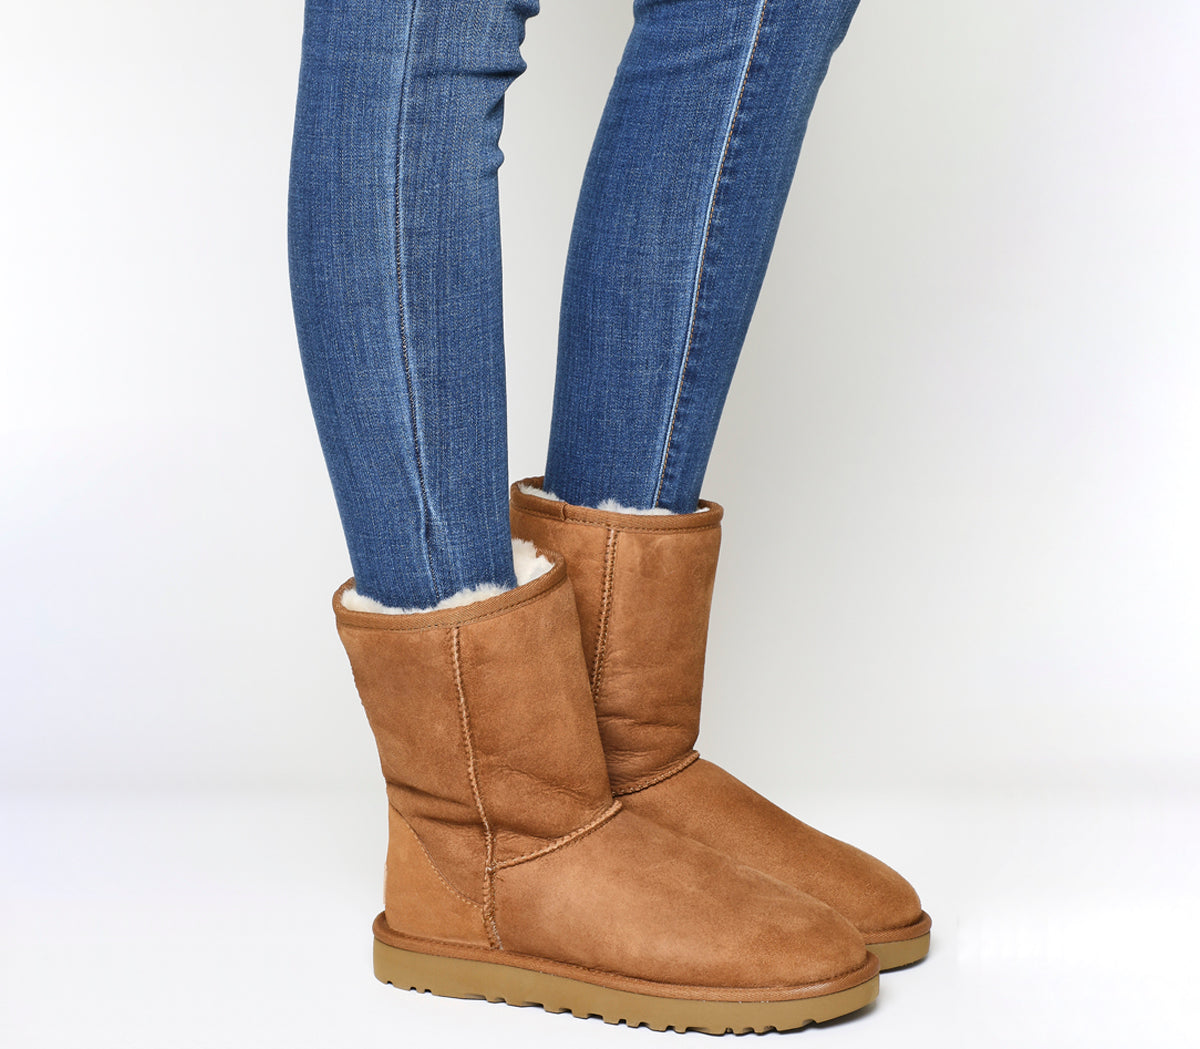 e8272a57bb1 Womens UGG Classic Short II Boots Chestnut Suede